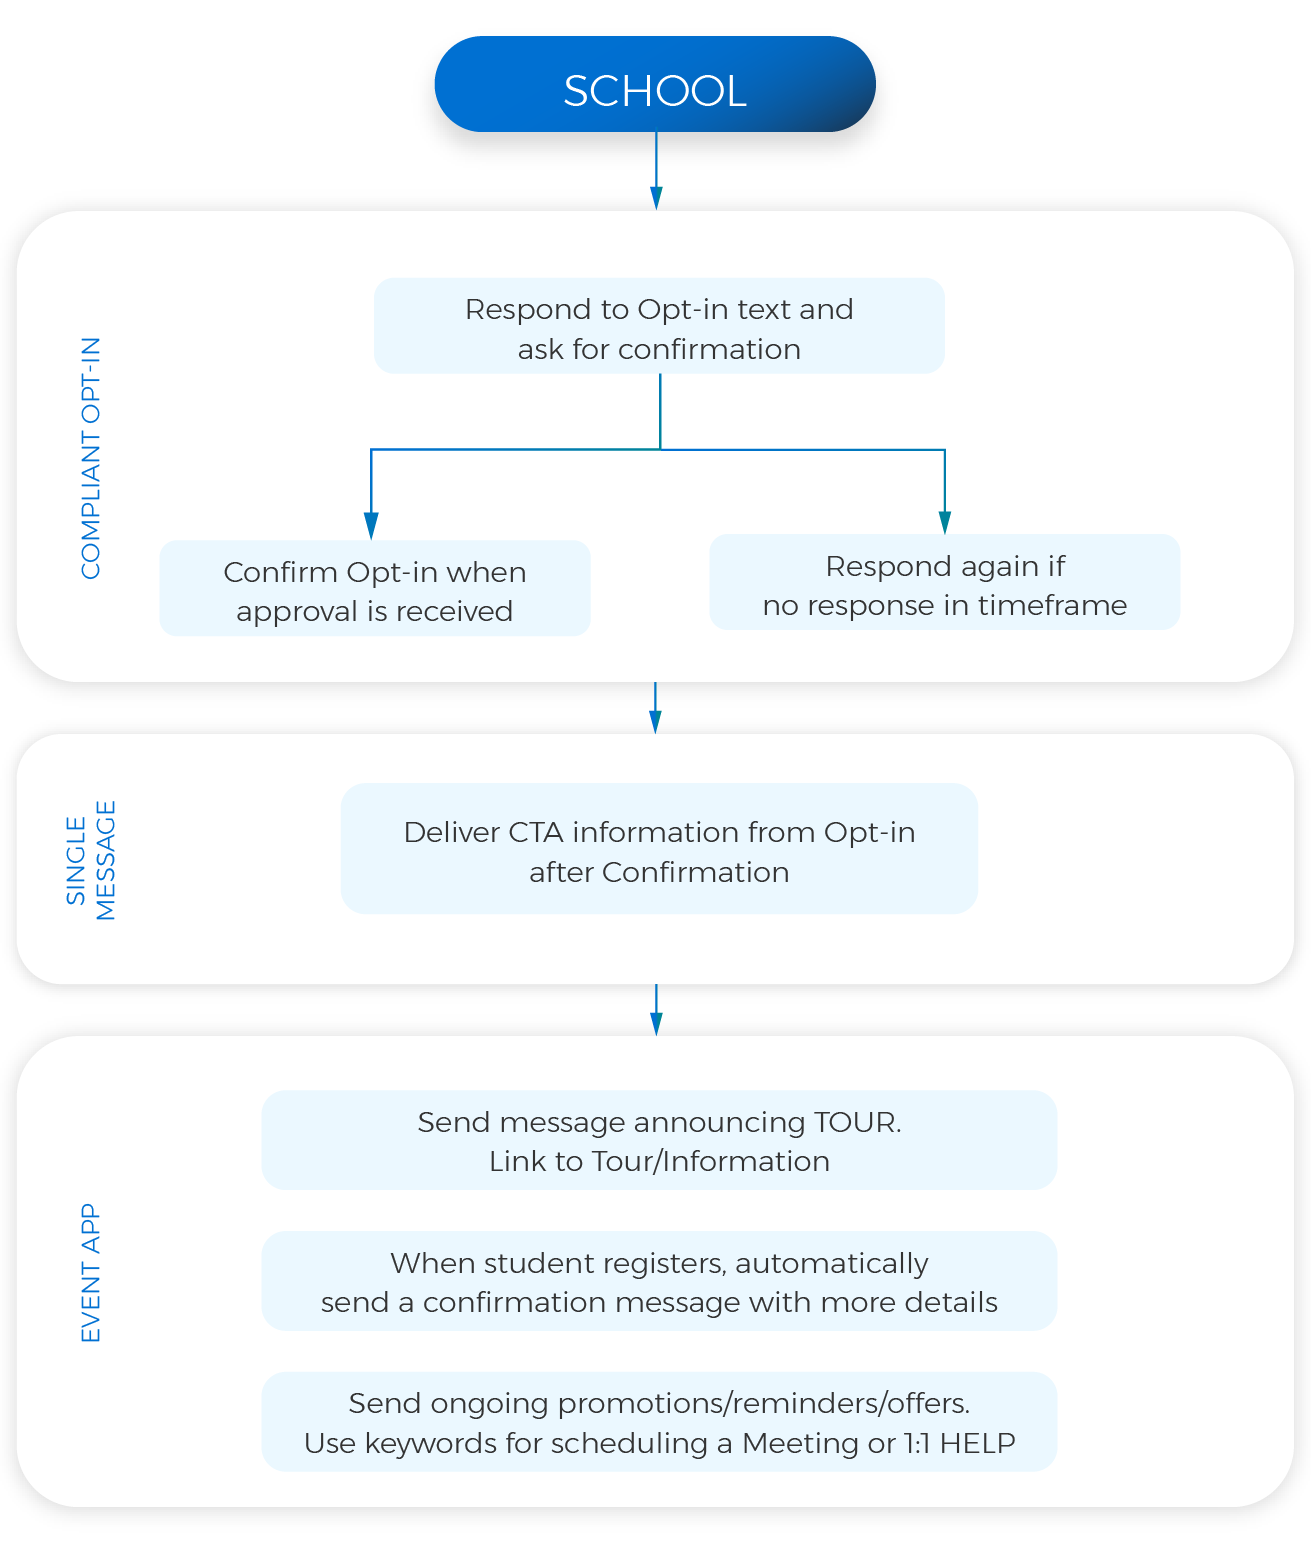 How to Get Opt-ins to Your Text Messaging Program | SMS-Magic